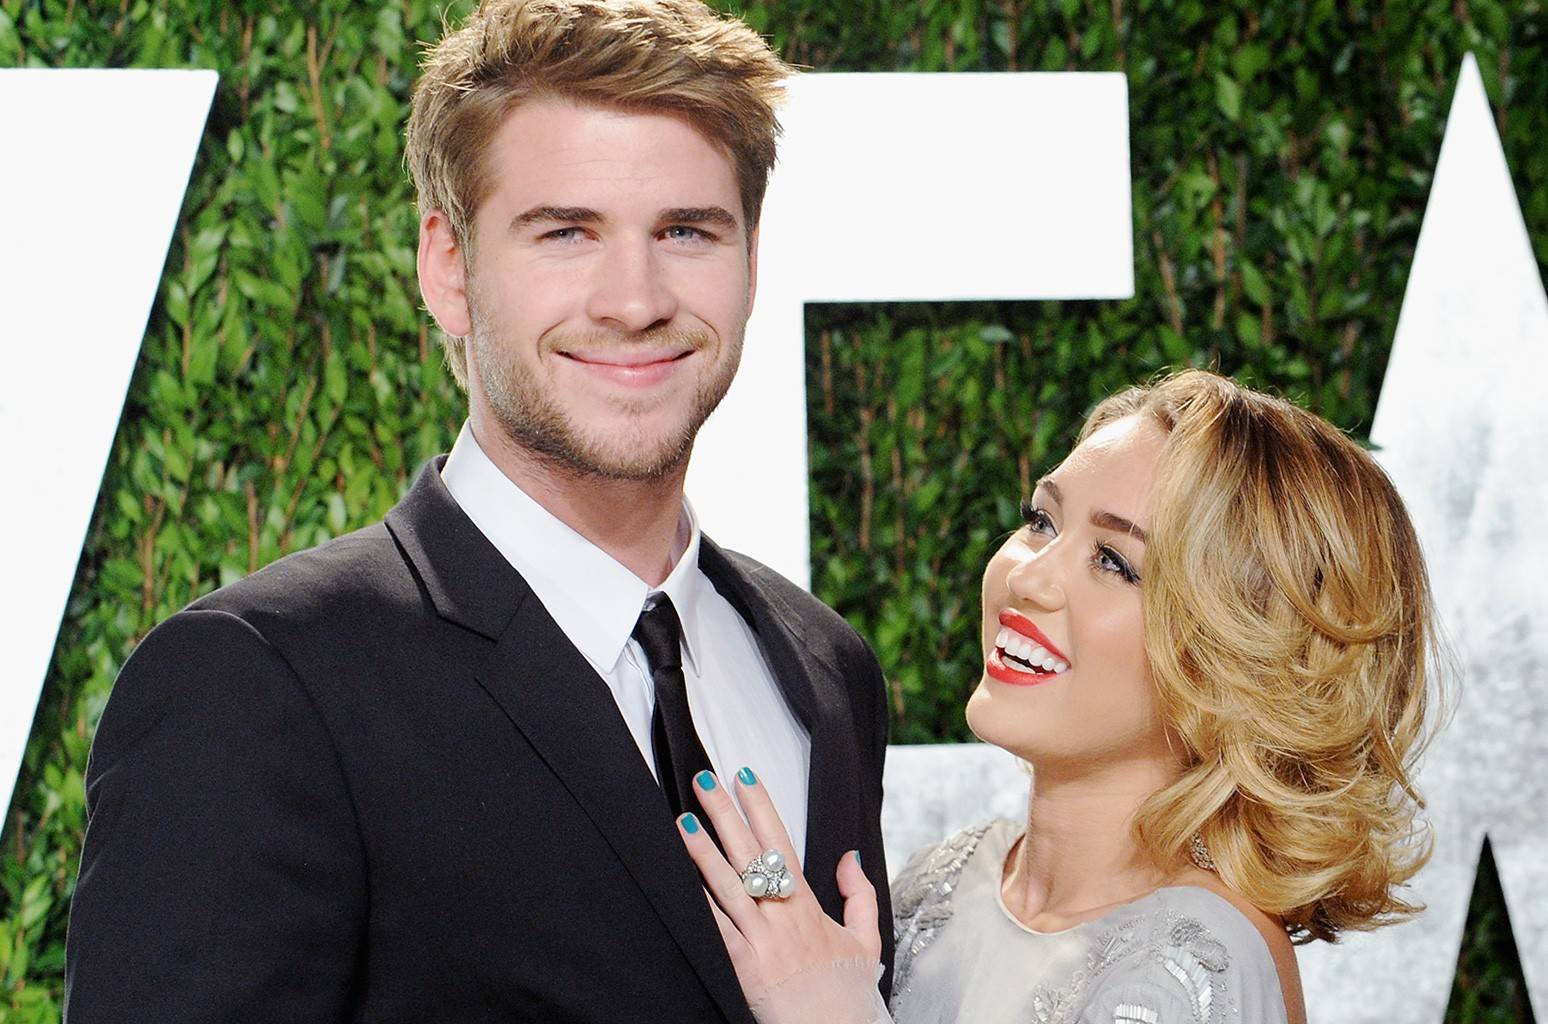 Liam Hemsworth and Miley Cyrus arrive at the 2012 Vanity Fair Oscar Party at Sunset Tower on Feb. 26, 2012 in West Hollywood, Calif.